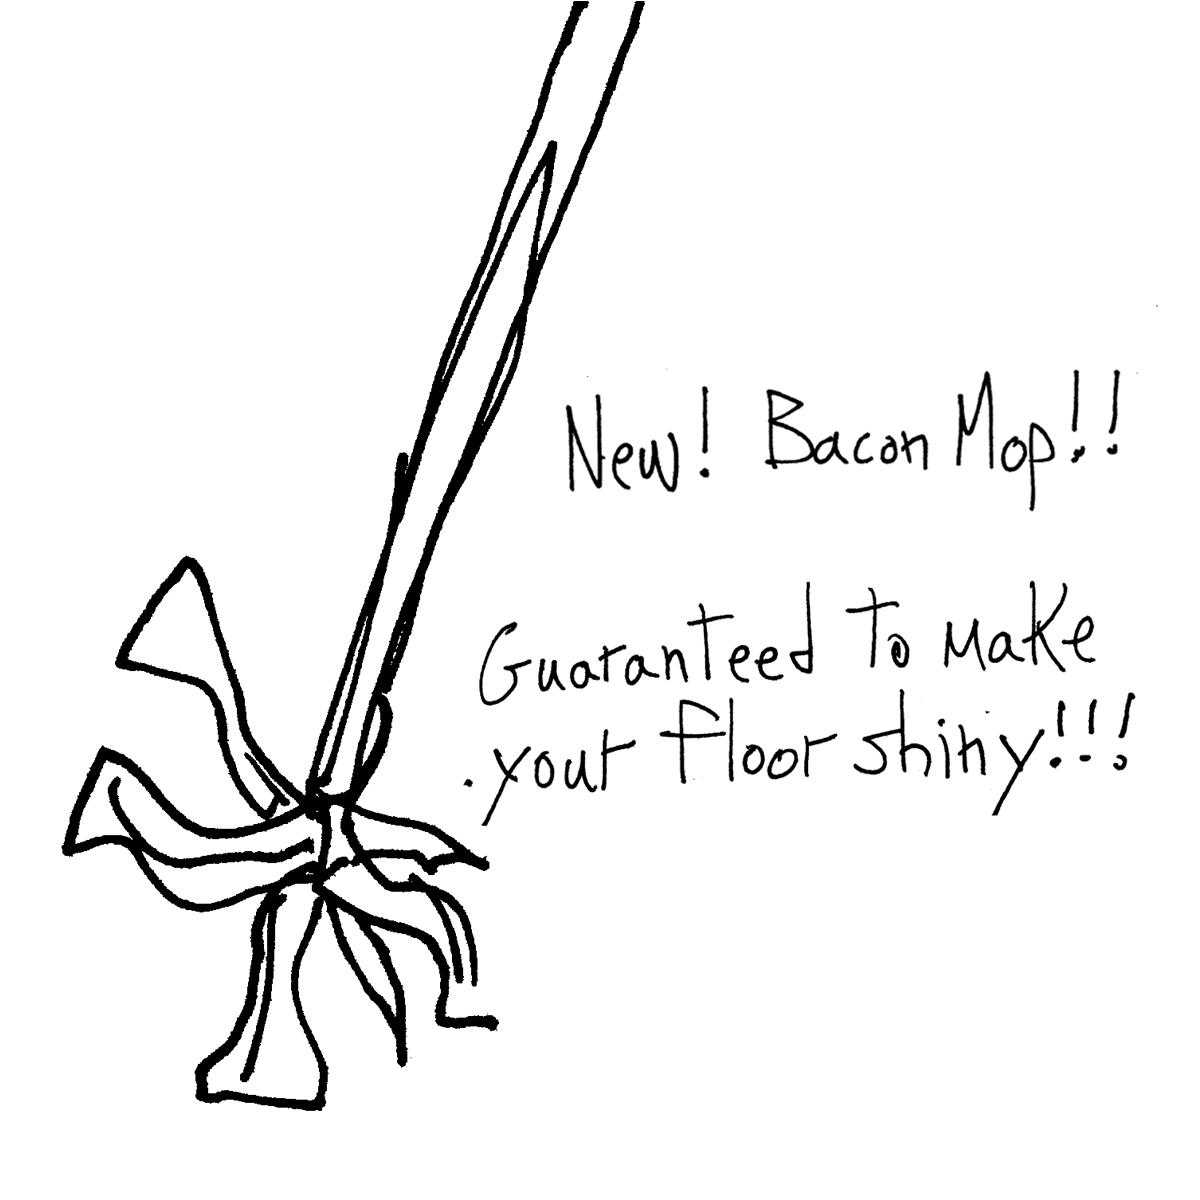 baconmop cartoon doodle